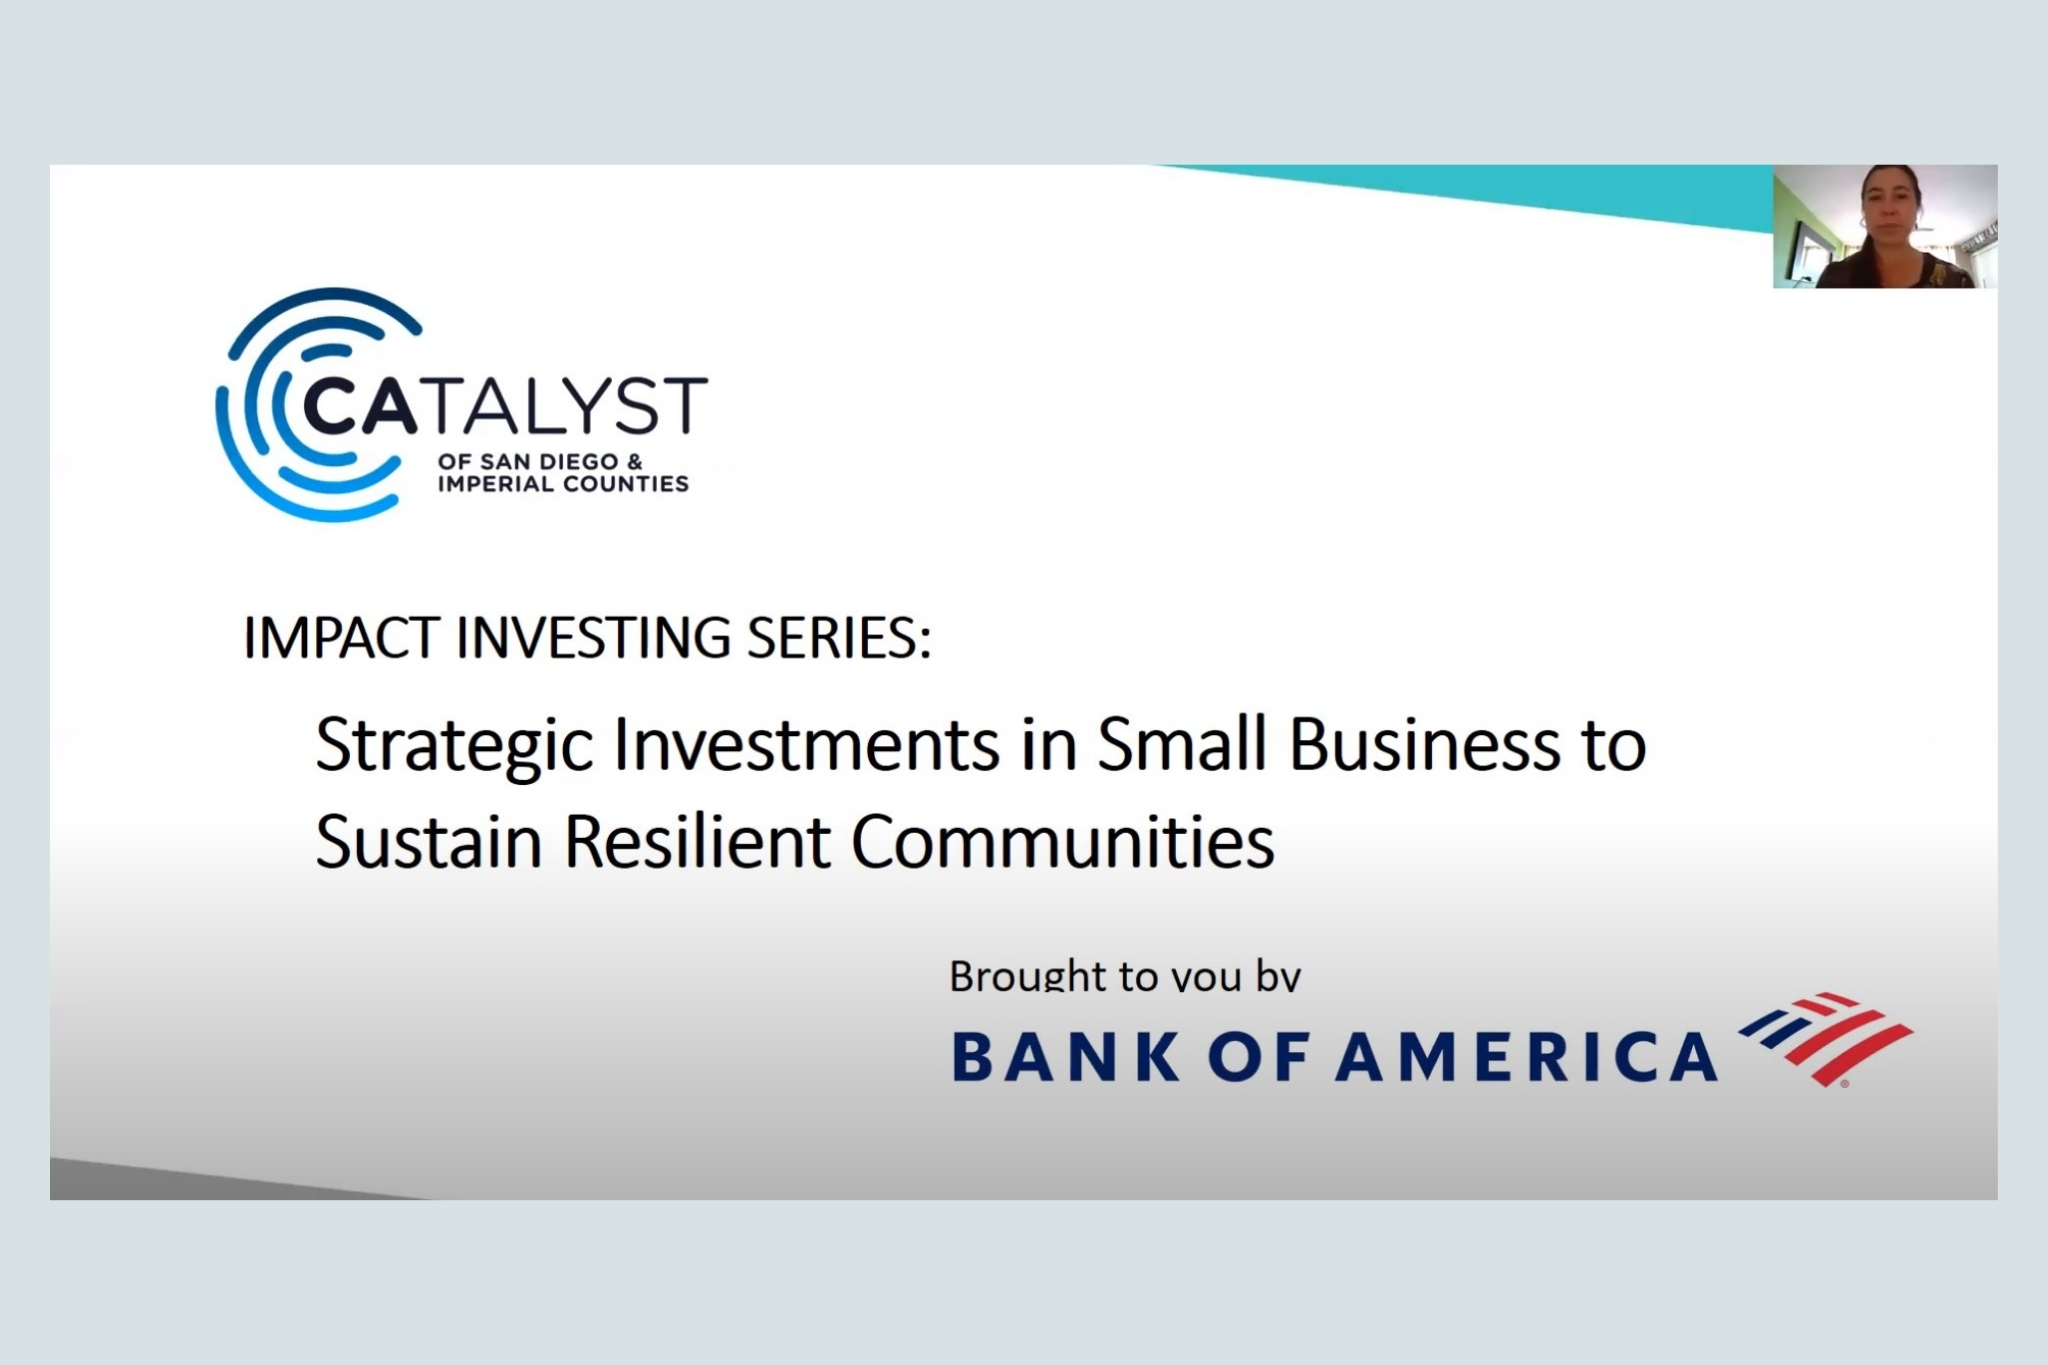 Catalyst of San Diego & Imperial Counties' Impact Investing Series: Strategic Investments in Small Business to Sustain Resilient Communities